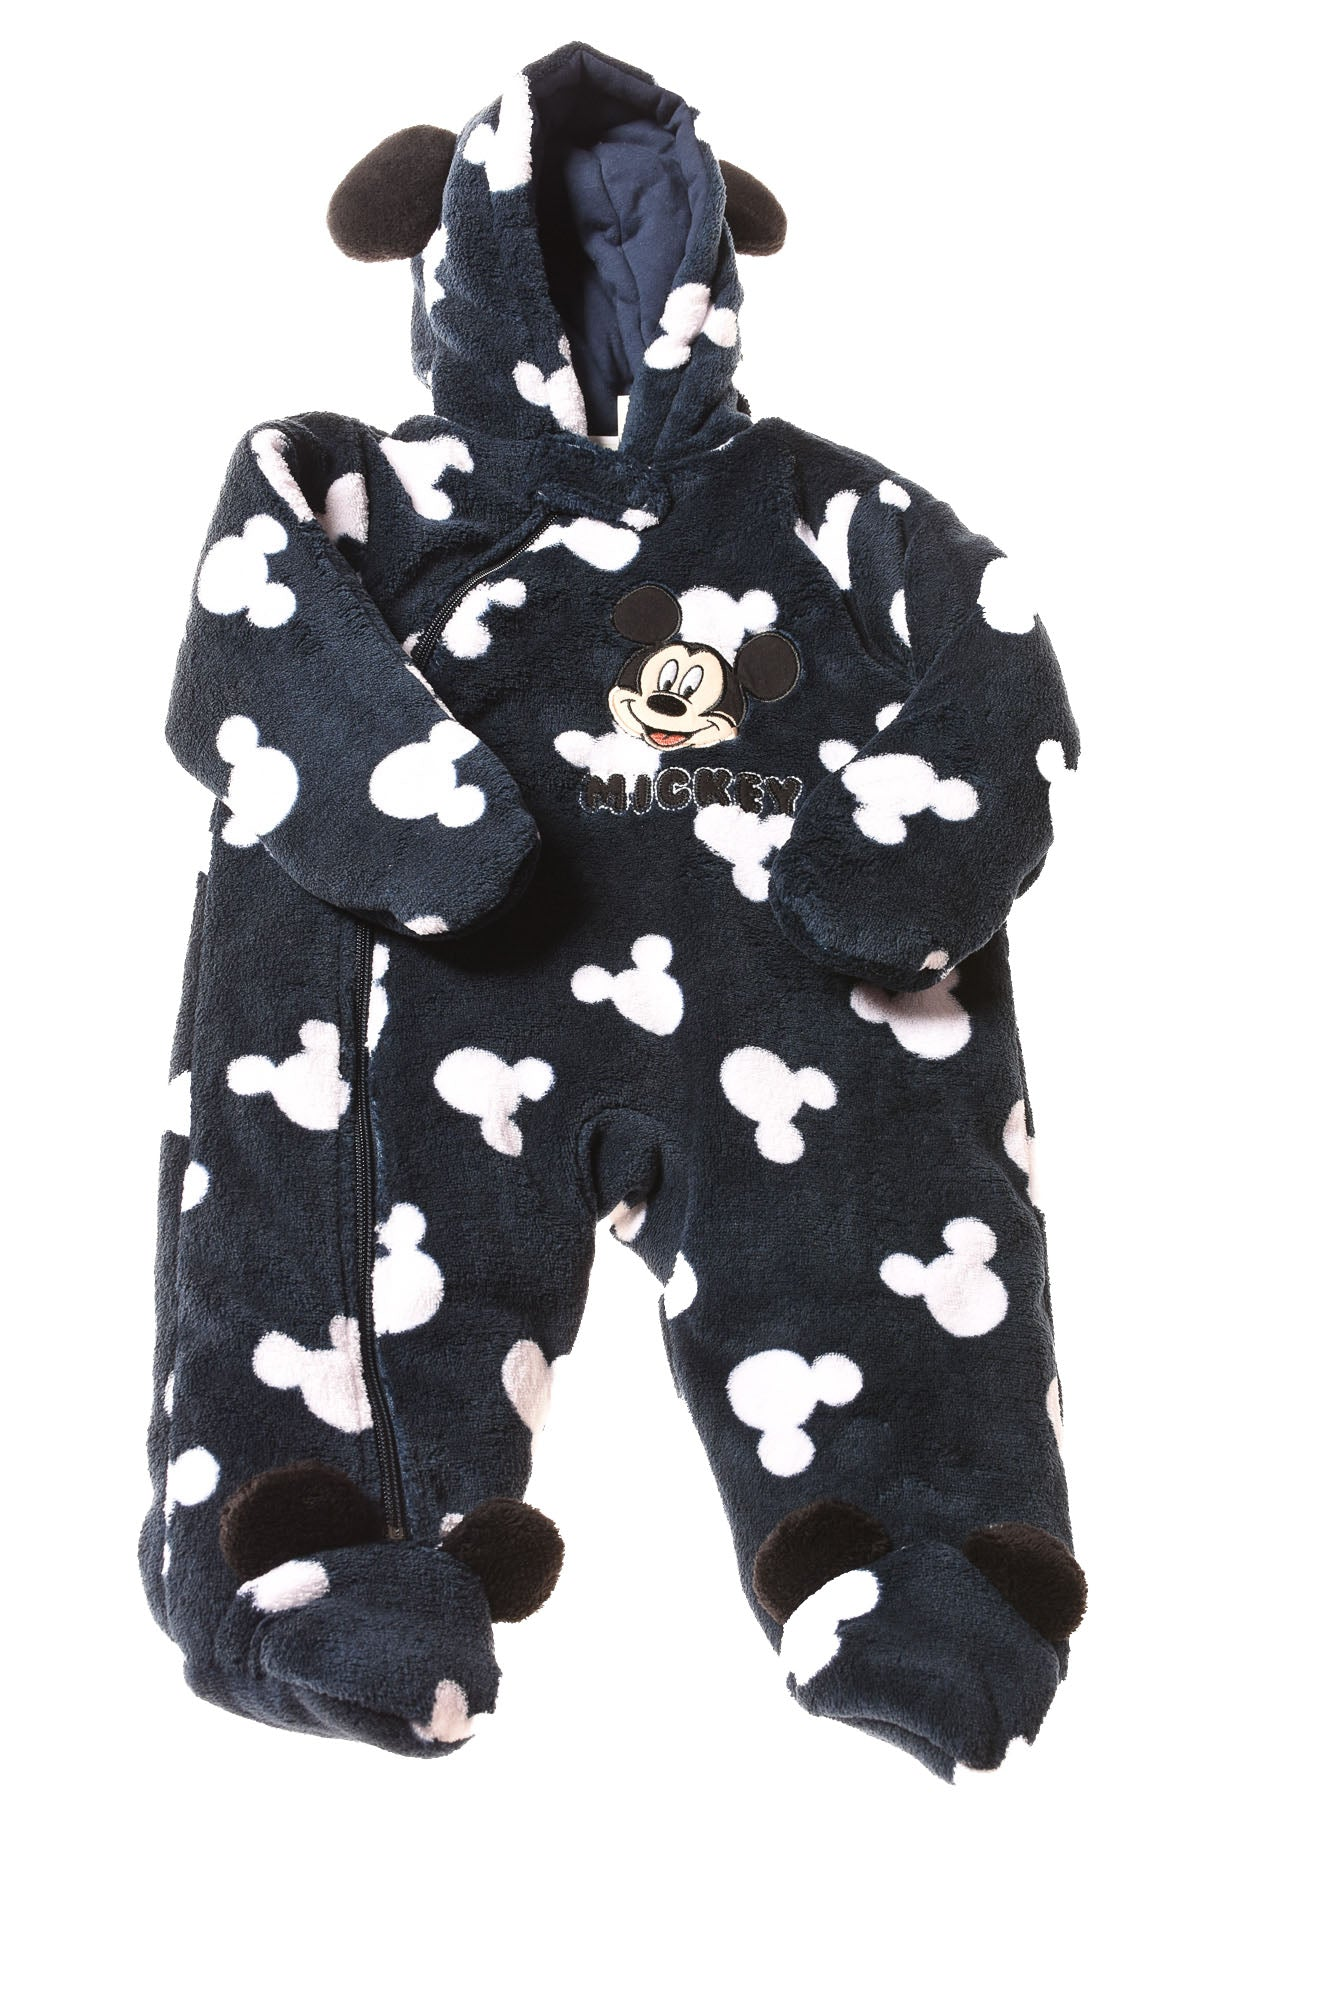 e5201a3df USED Disney Baby Baby Boy's Snowsuit 6 Months Navy & White - Village ...